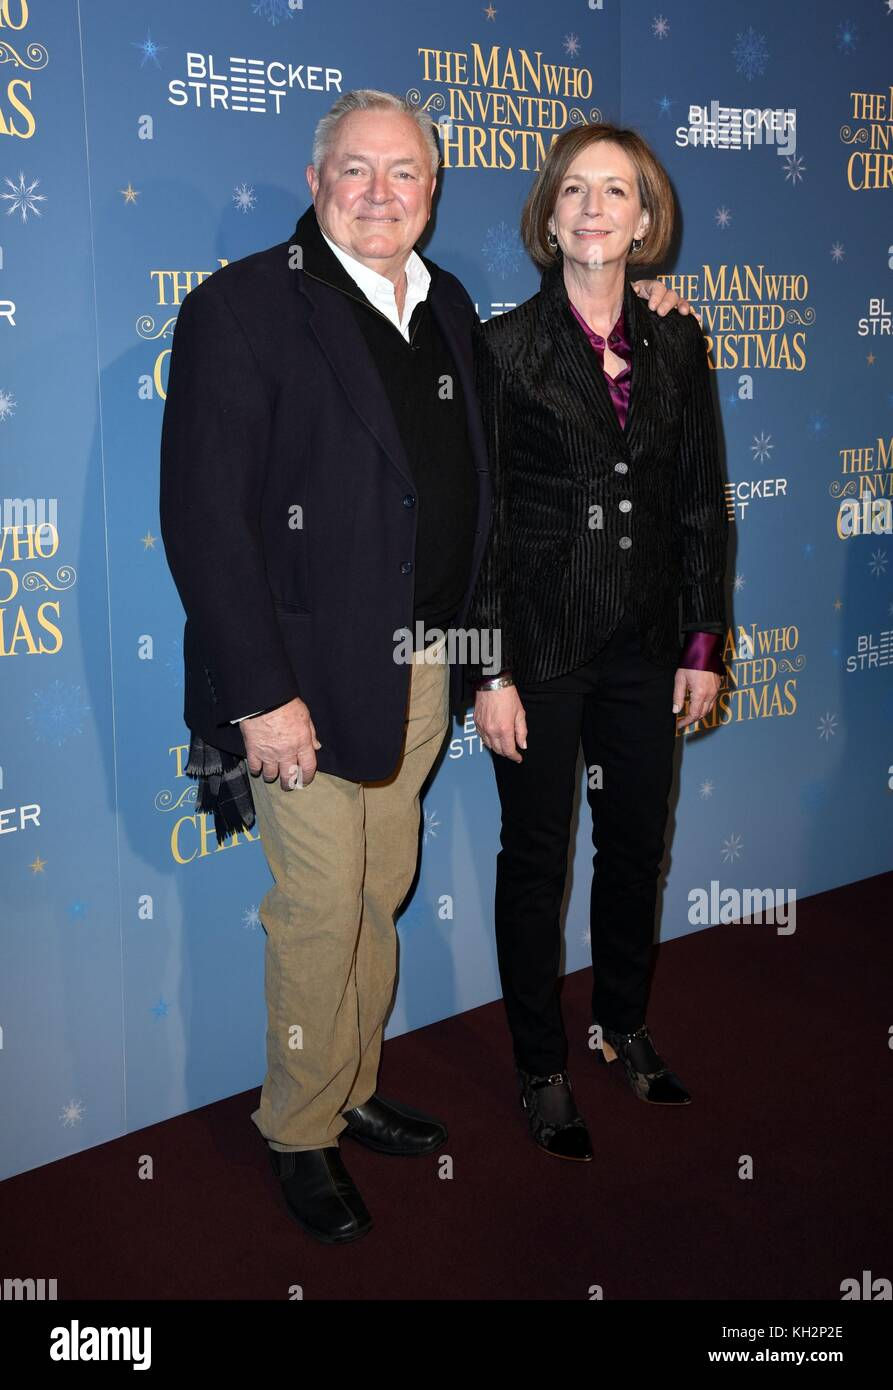 New York, NY, USA. 12th Nov, 2017. Lee Standiford, Susan Coyne at arrivals for THE MAN WHO INVENTED CHRISTMAS Premiere, - Stock Image